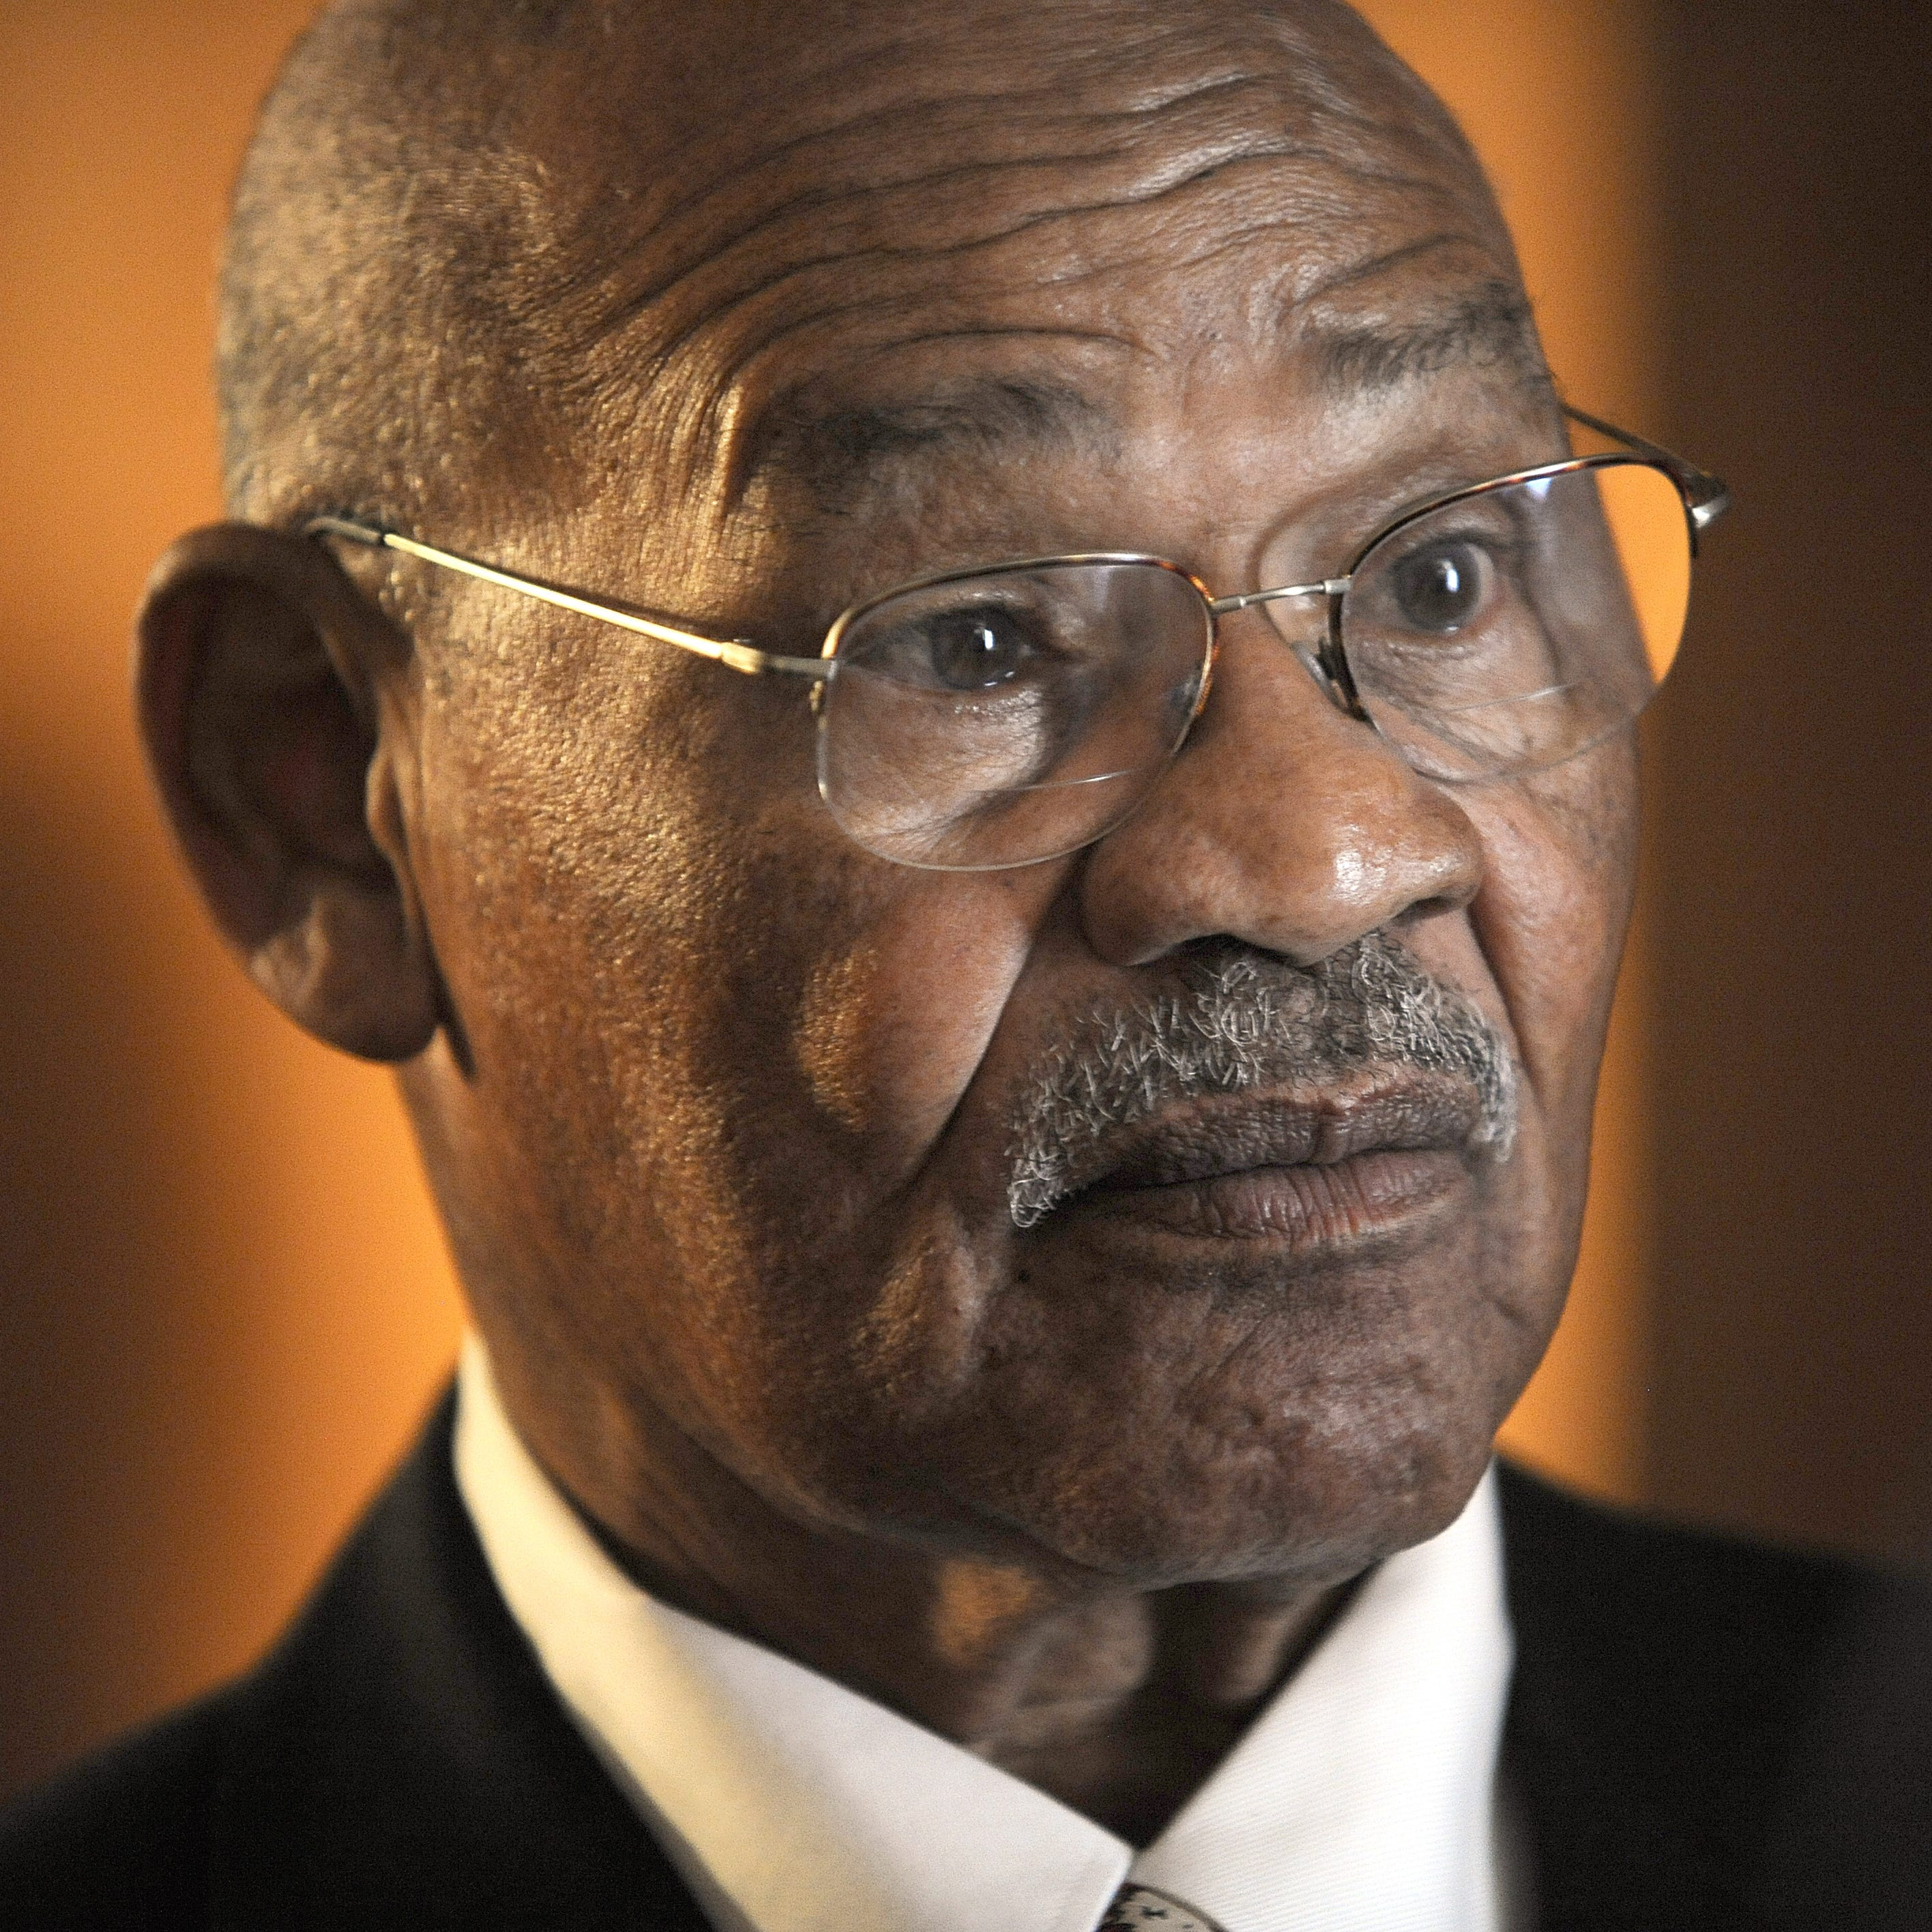 George Taliaferro had an unwavering determination to right the wrongs around him